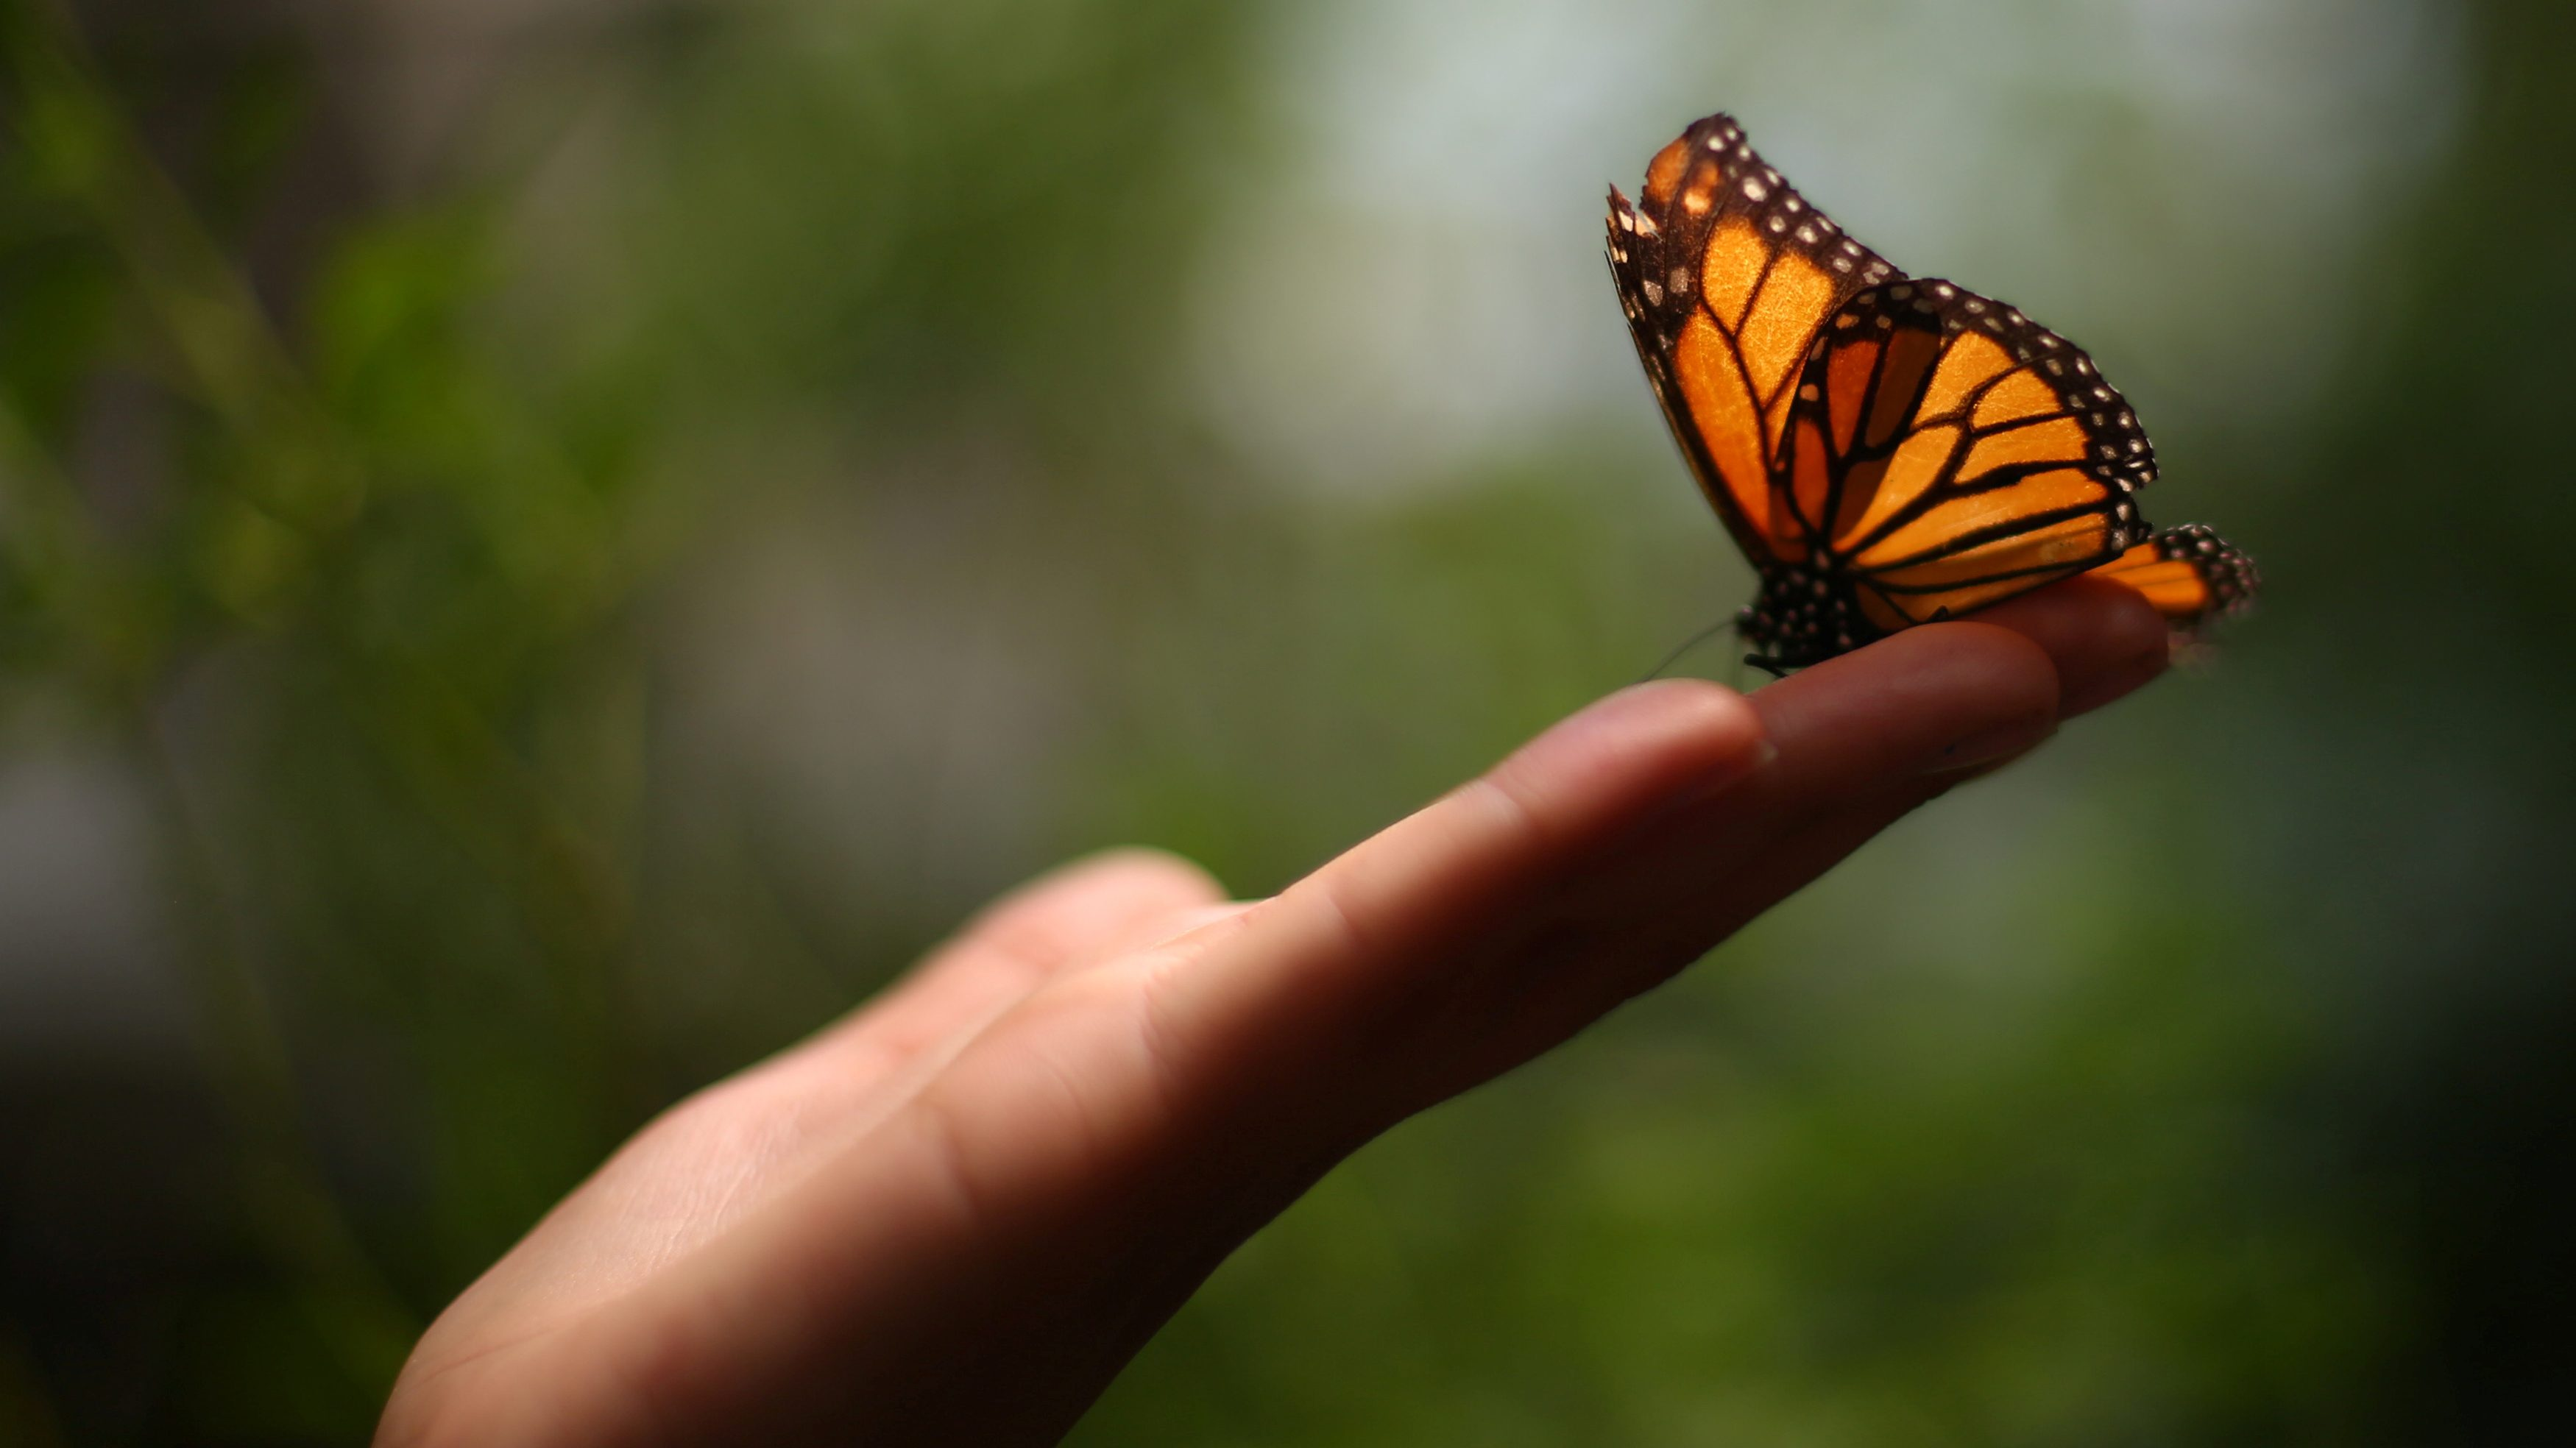 A Monarch butterfly rests on a visitor's hand during the official Inauguration of the month of the Monarch butterfly at Chapultepec Zoo in Mexico City, Mexico, April 6, 2017.